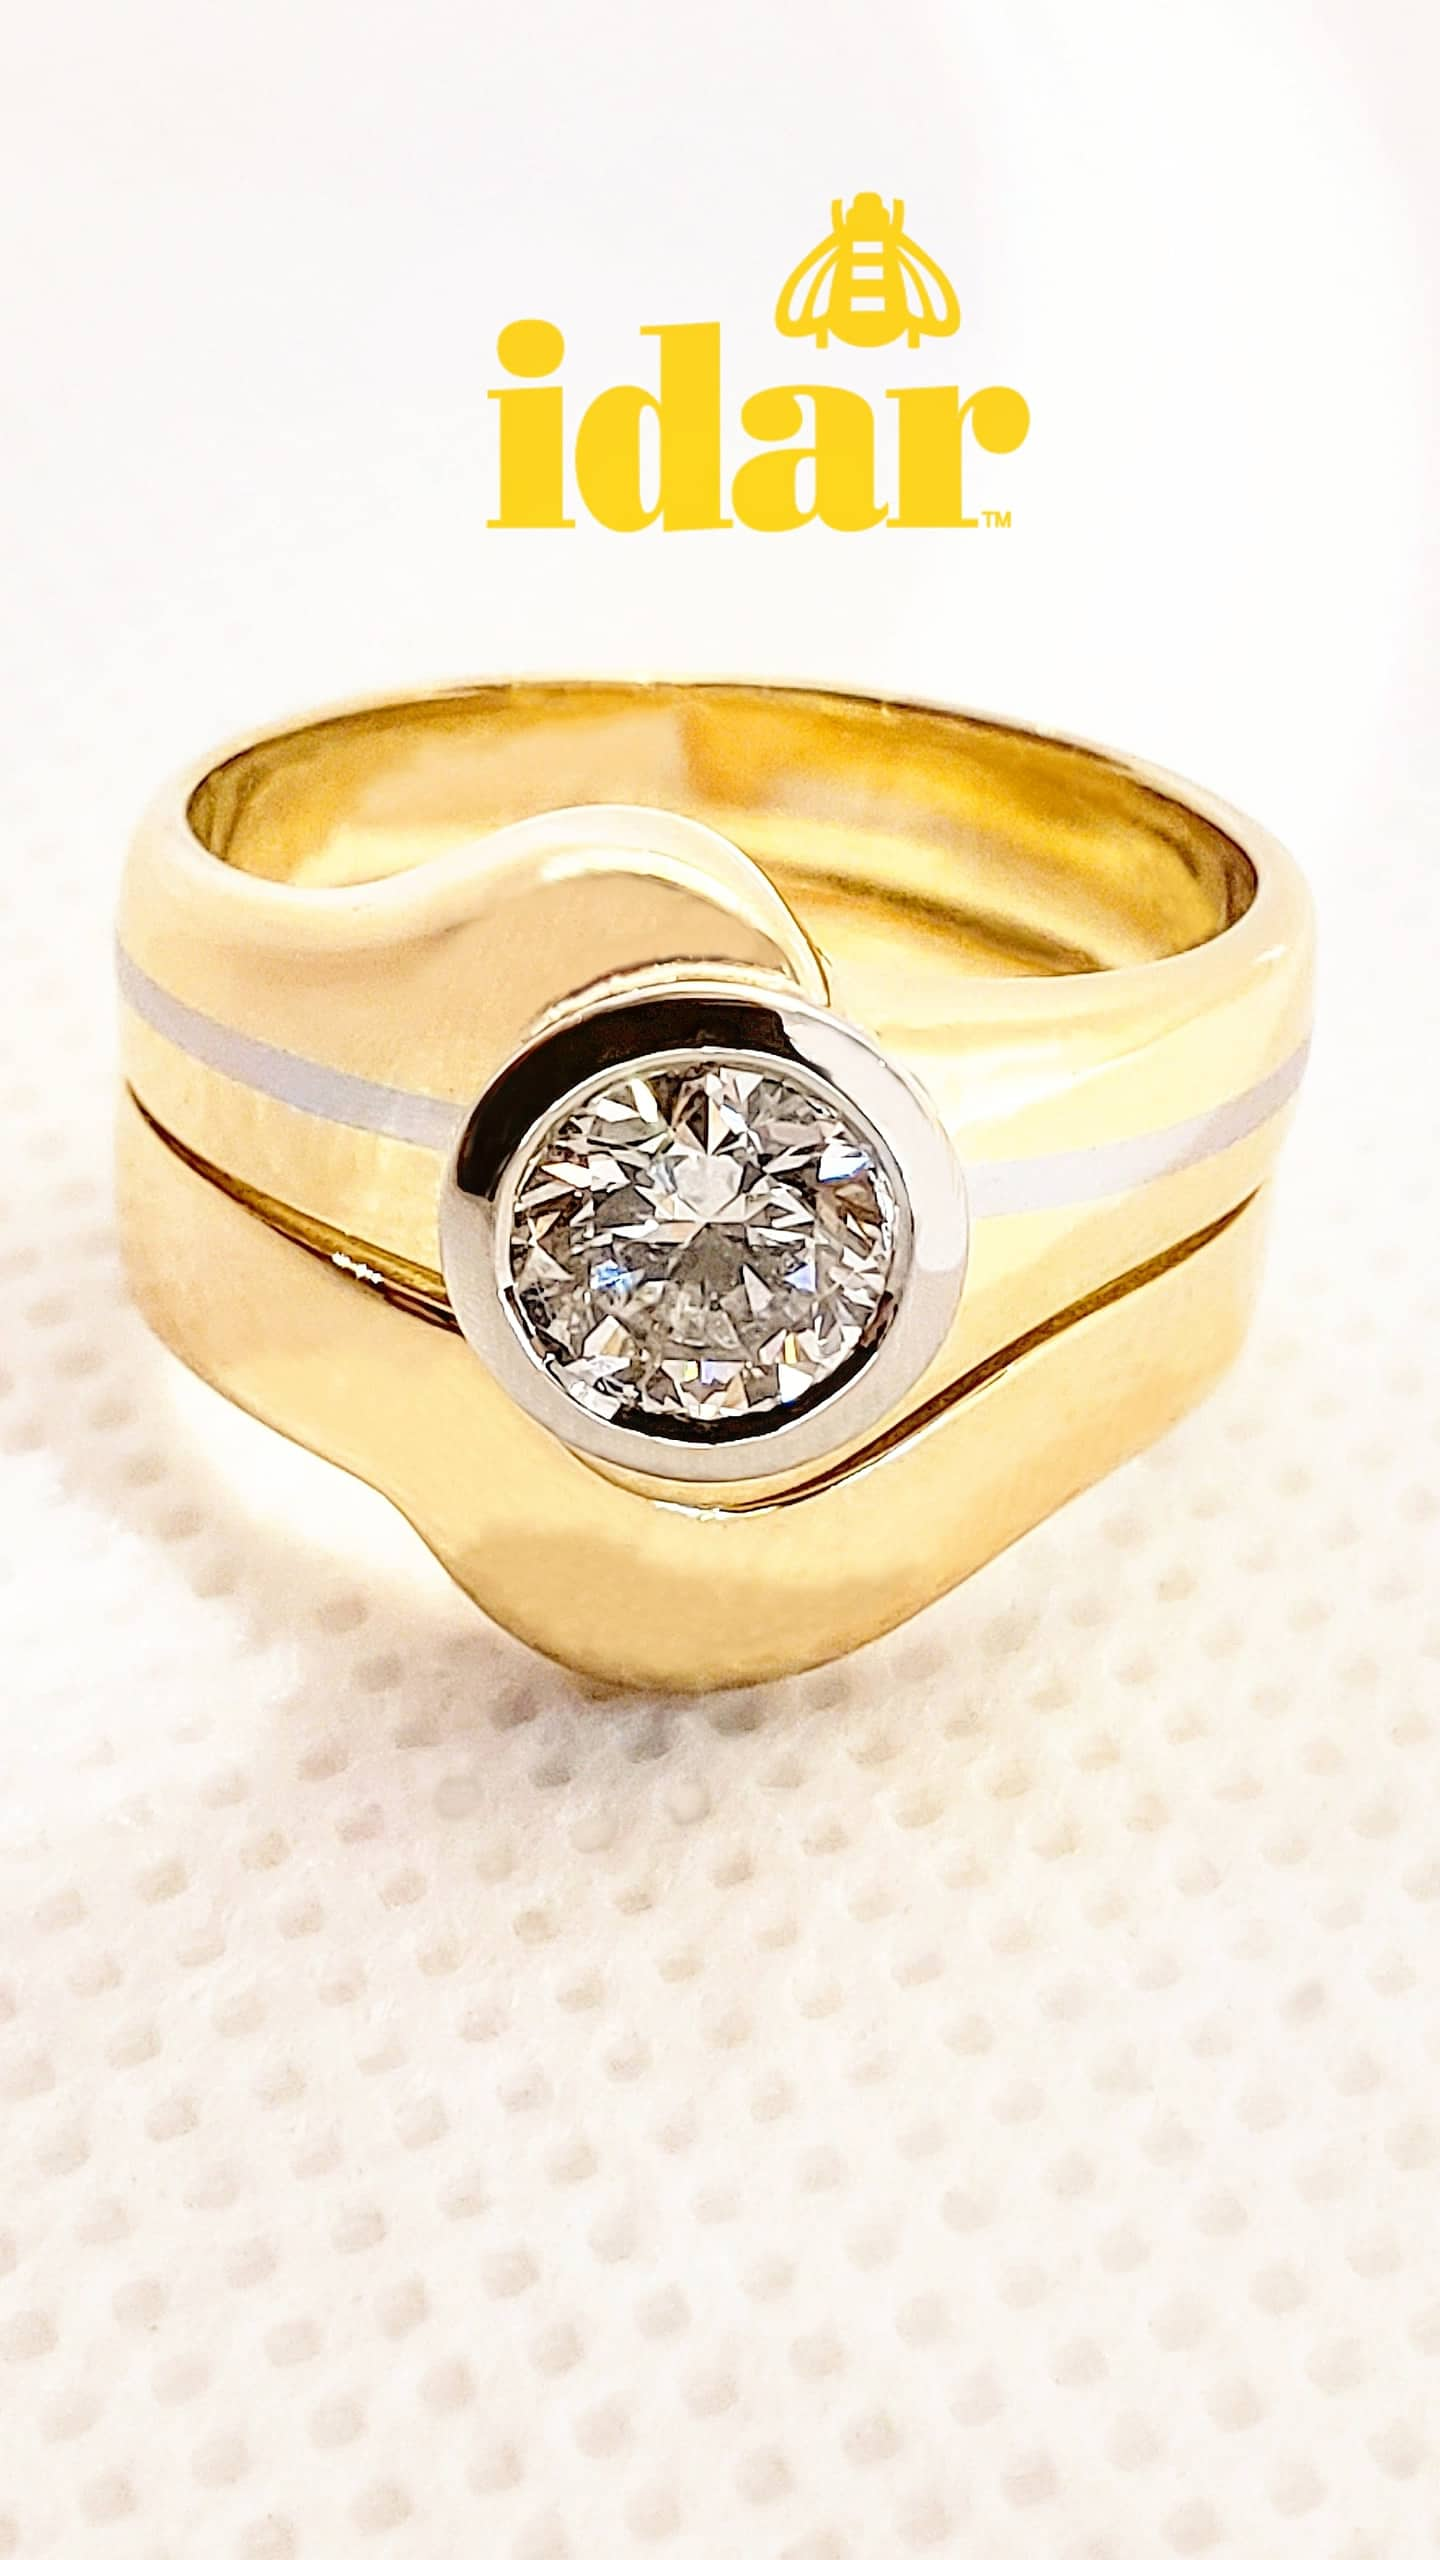 Idar Jewellery Store, Victoria, BC Canada, award winning, luxury, hand-crafted, custom, rings, wedding, engagement, anniversary, birthday, treat yourself, For Me From Me, gold, ring